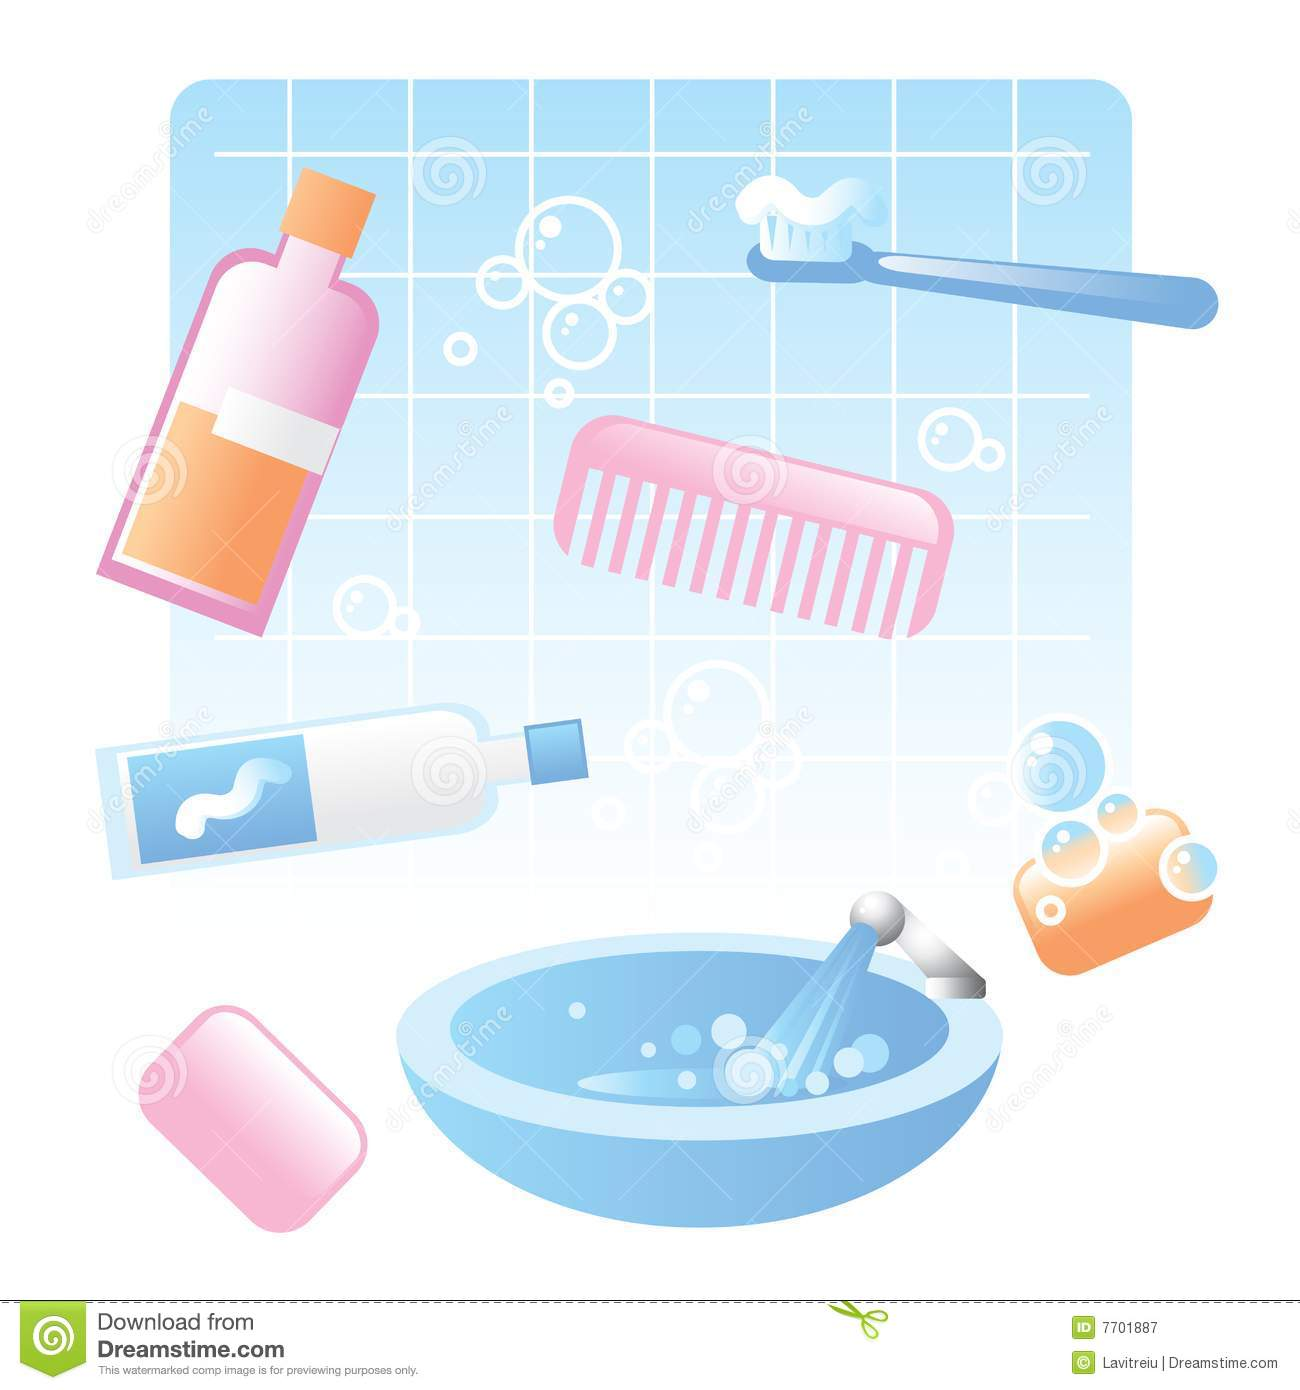 Bathroom stuff clipart for Bathroom things